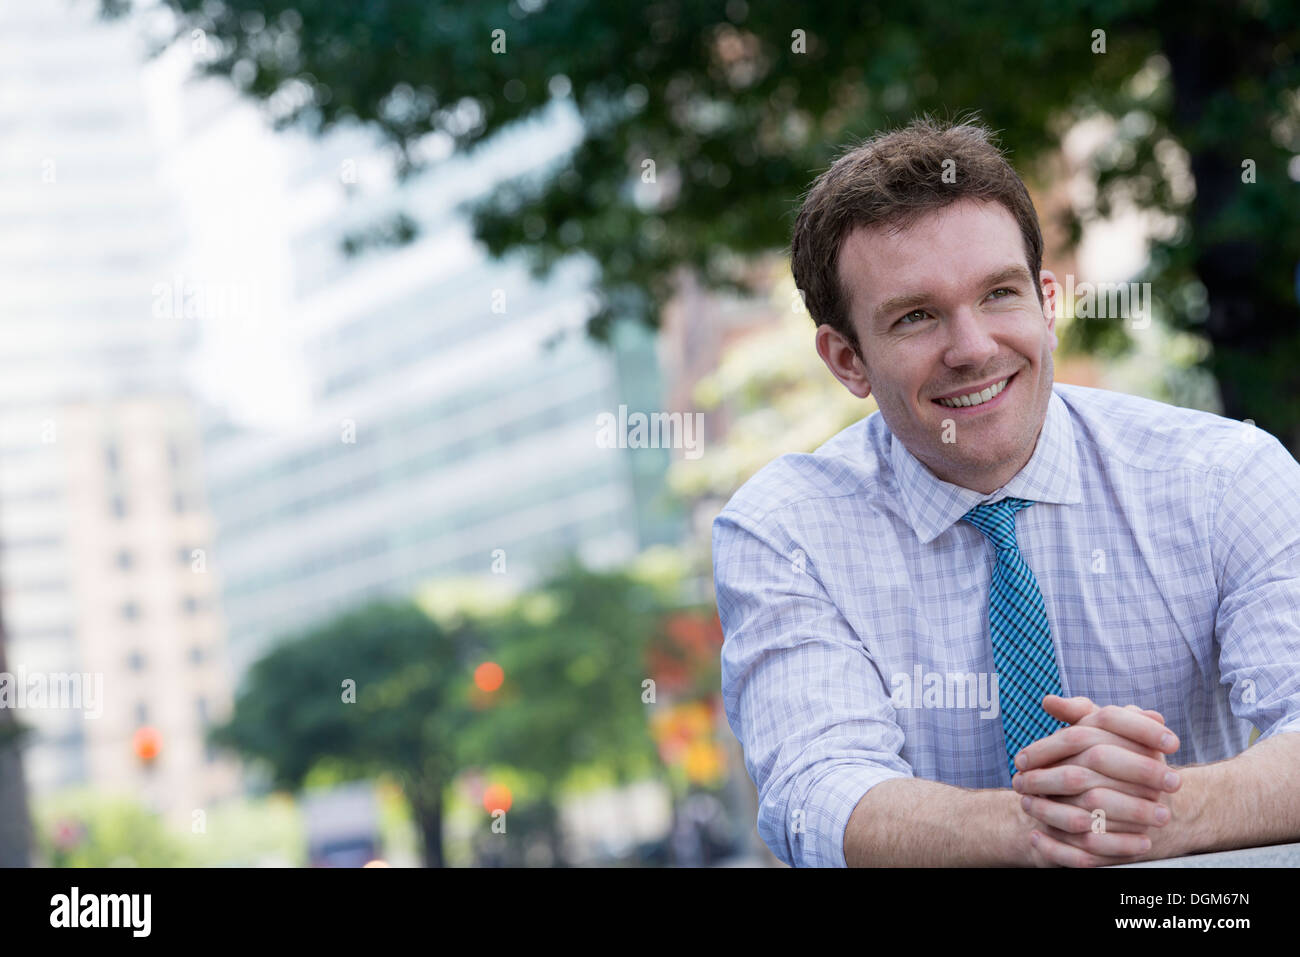 Summer. A man in a white shirt and blue tie with his hands clasped, leaning on a railing. - Stock Image